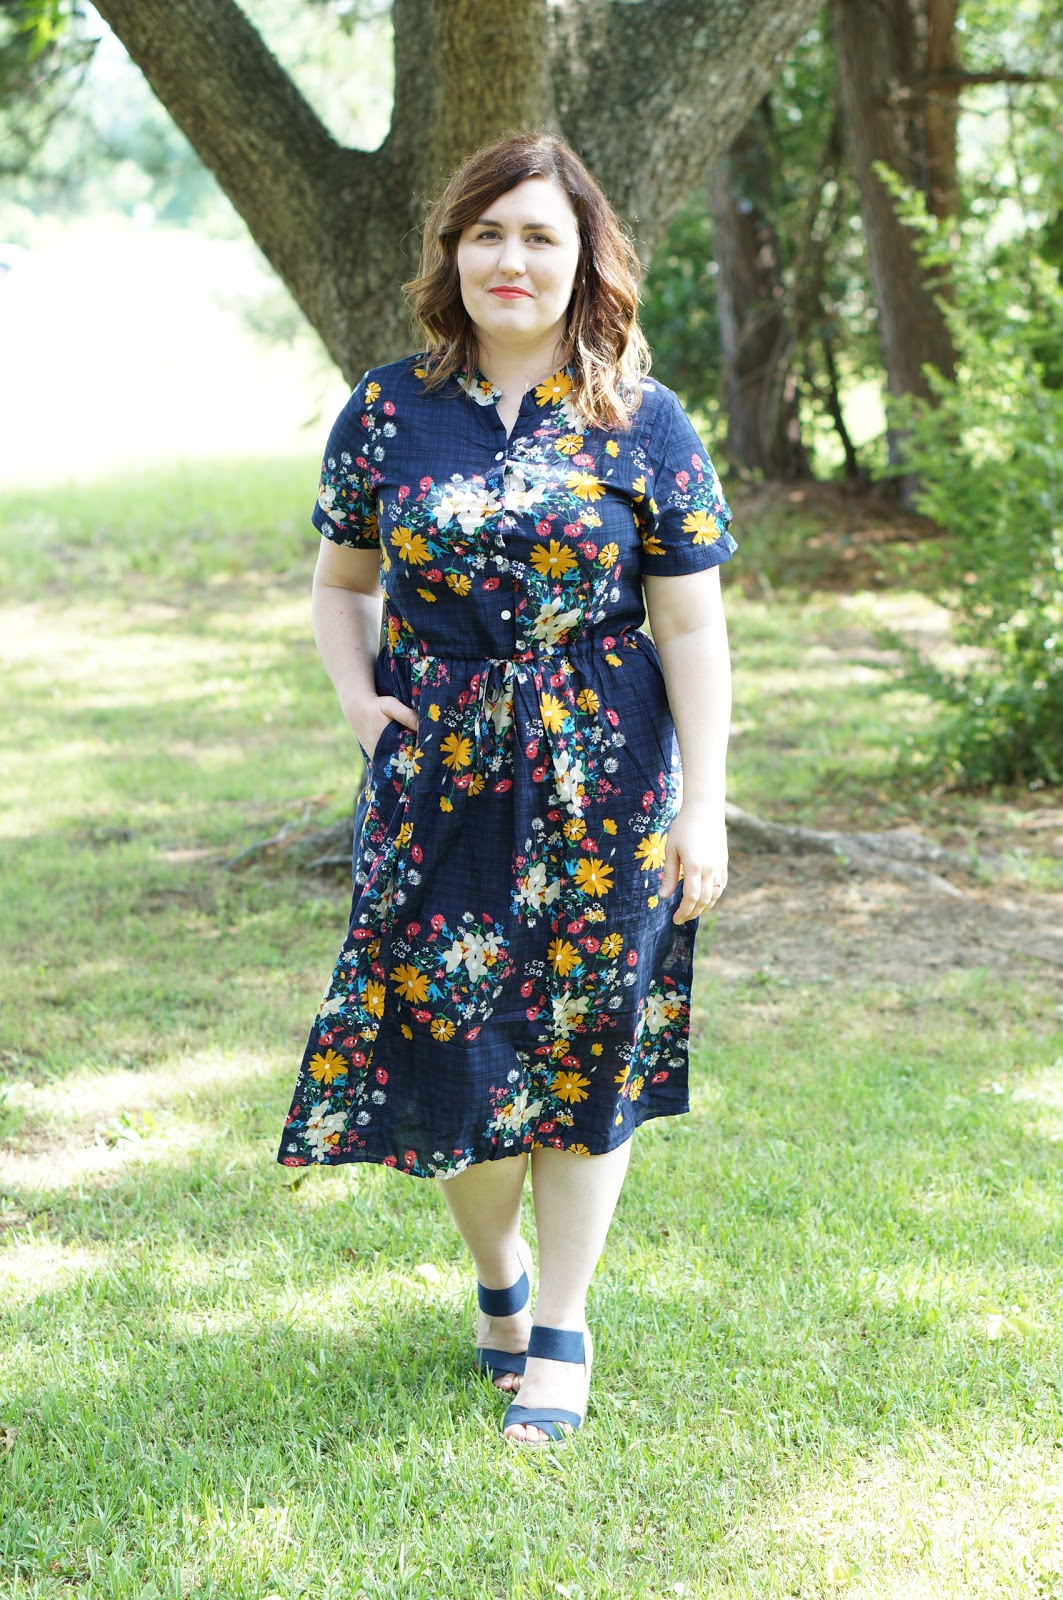 Rebecca Lately Zaful Floral Vintage Dress Target Navy Wedges Marc Jacobs Beauty Cora Cora